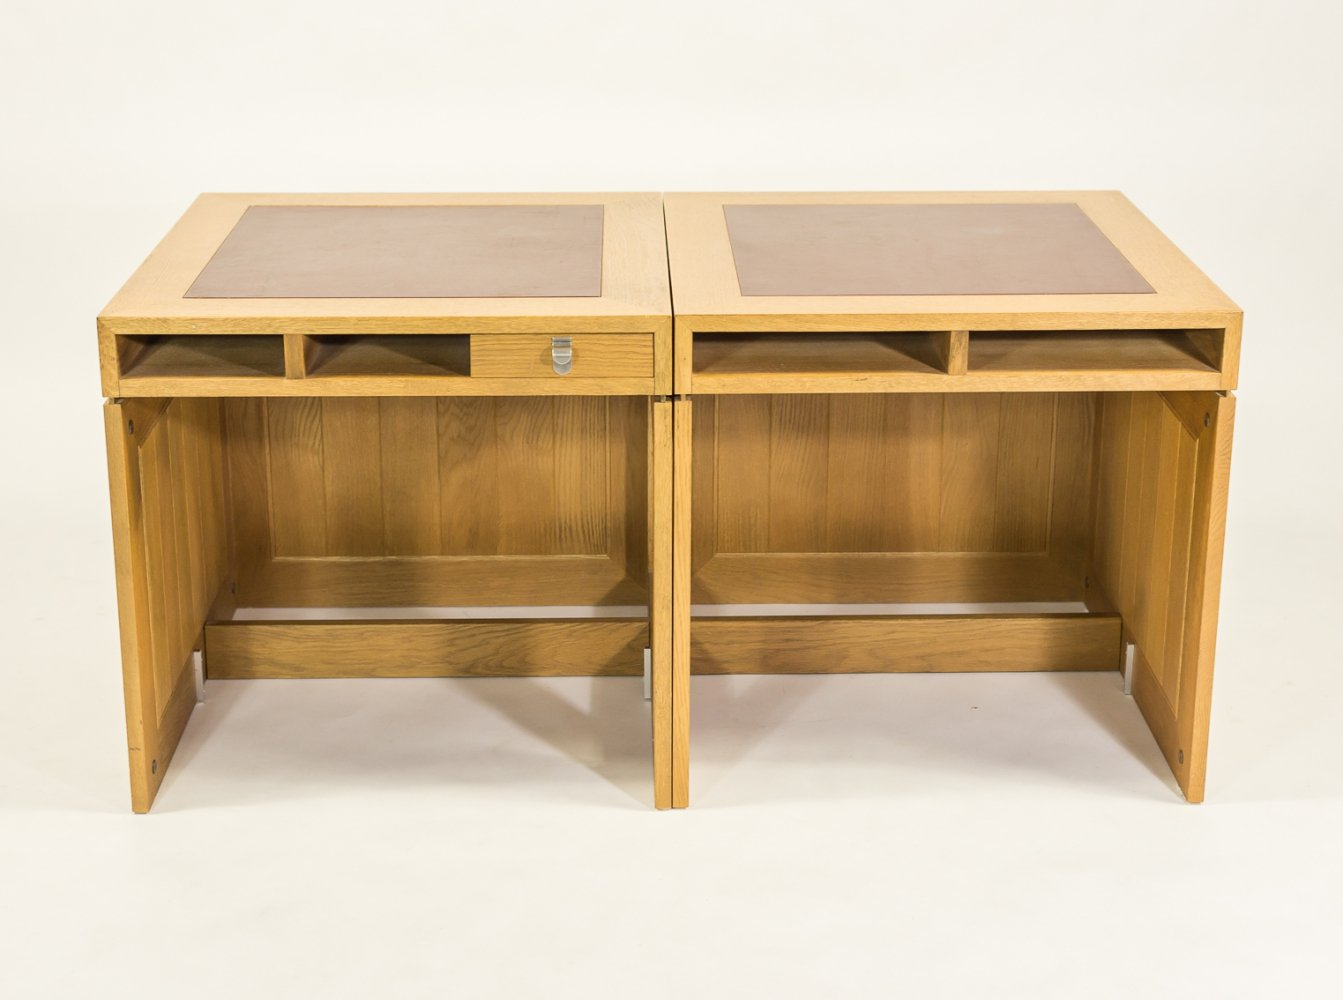 Two console desk by Borge Mogensen for Tage Christensen